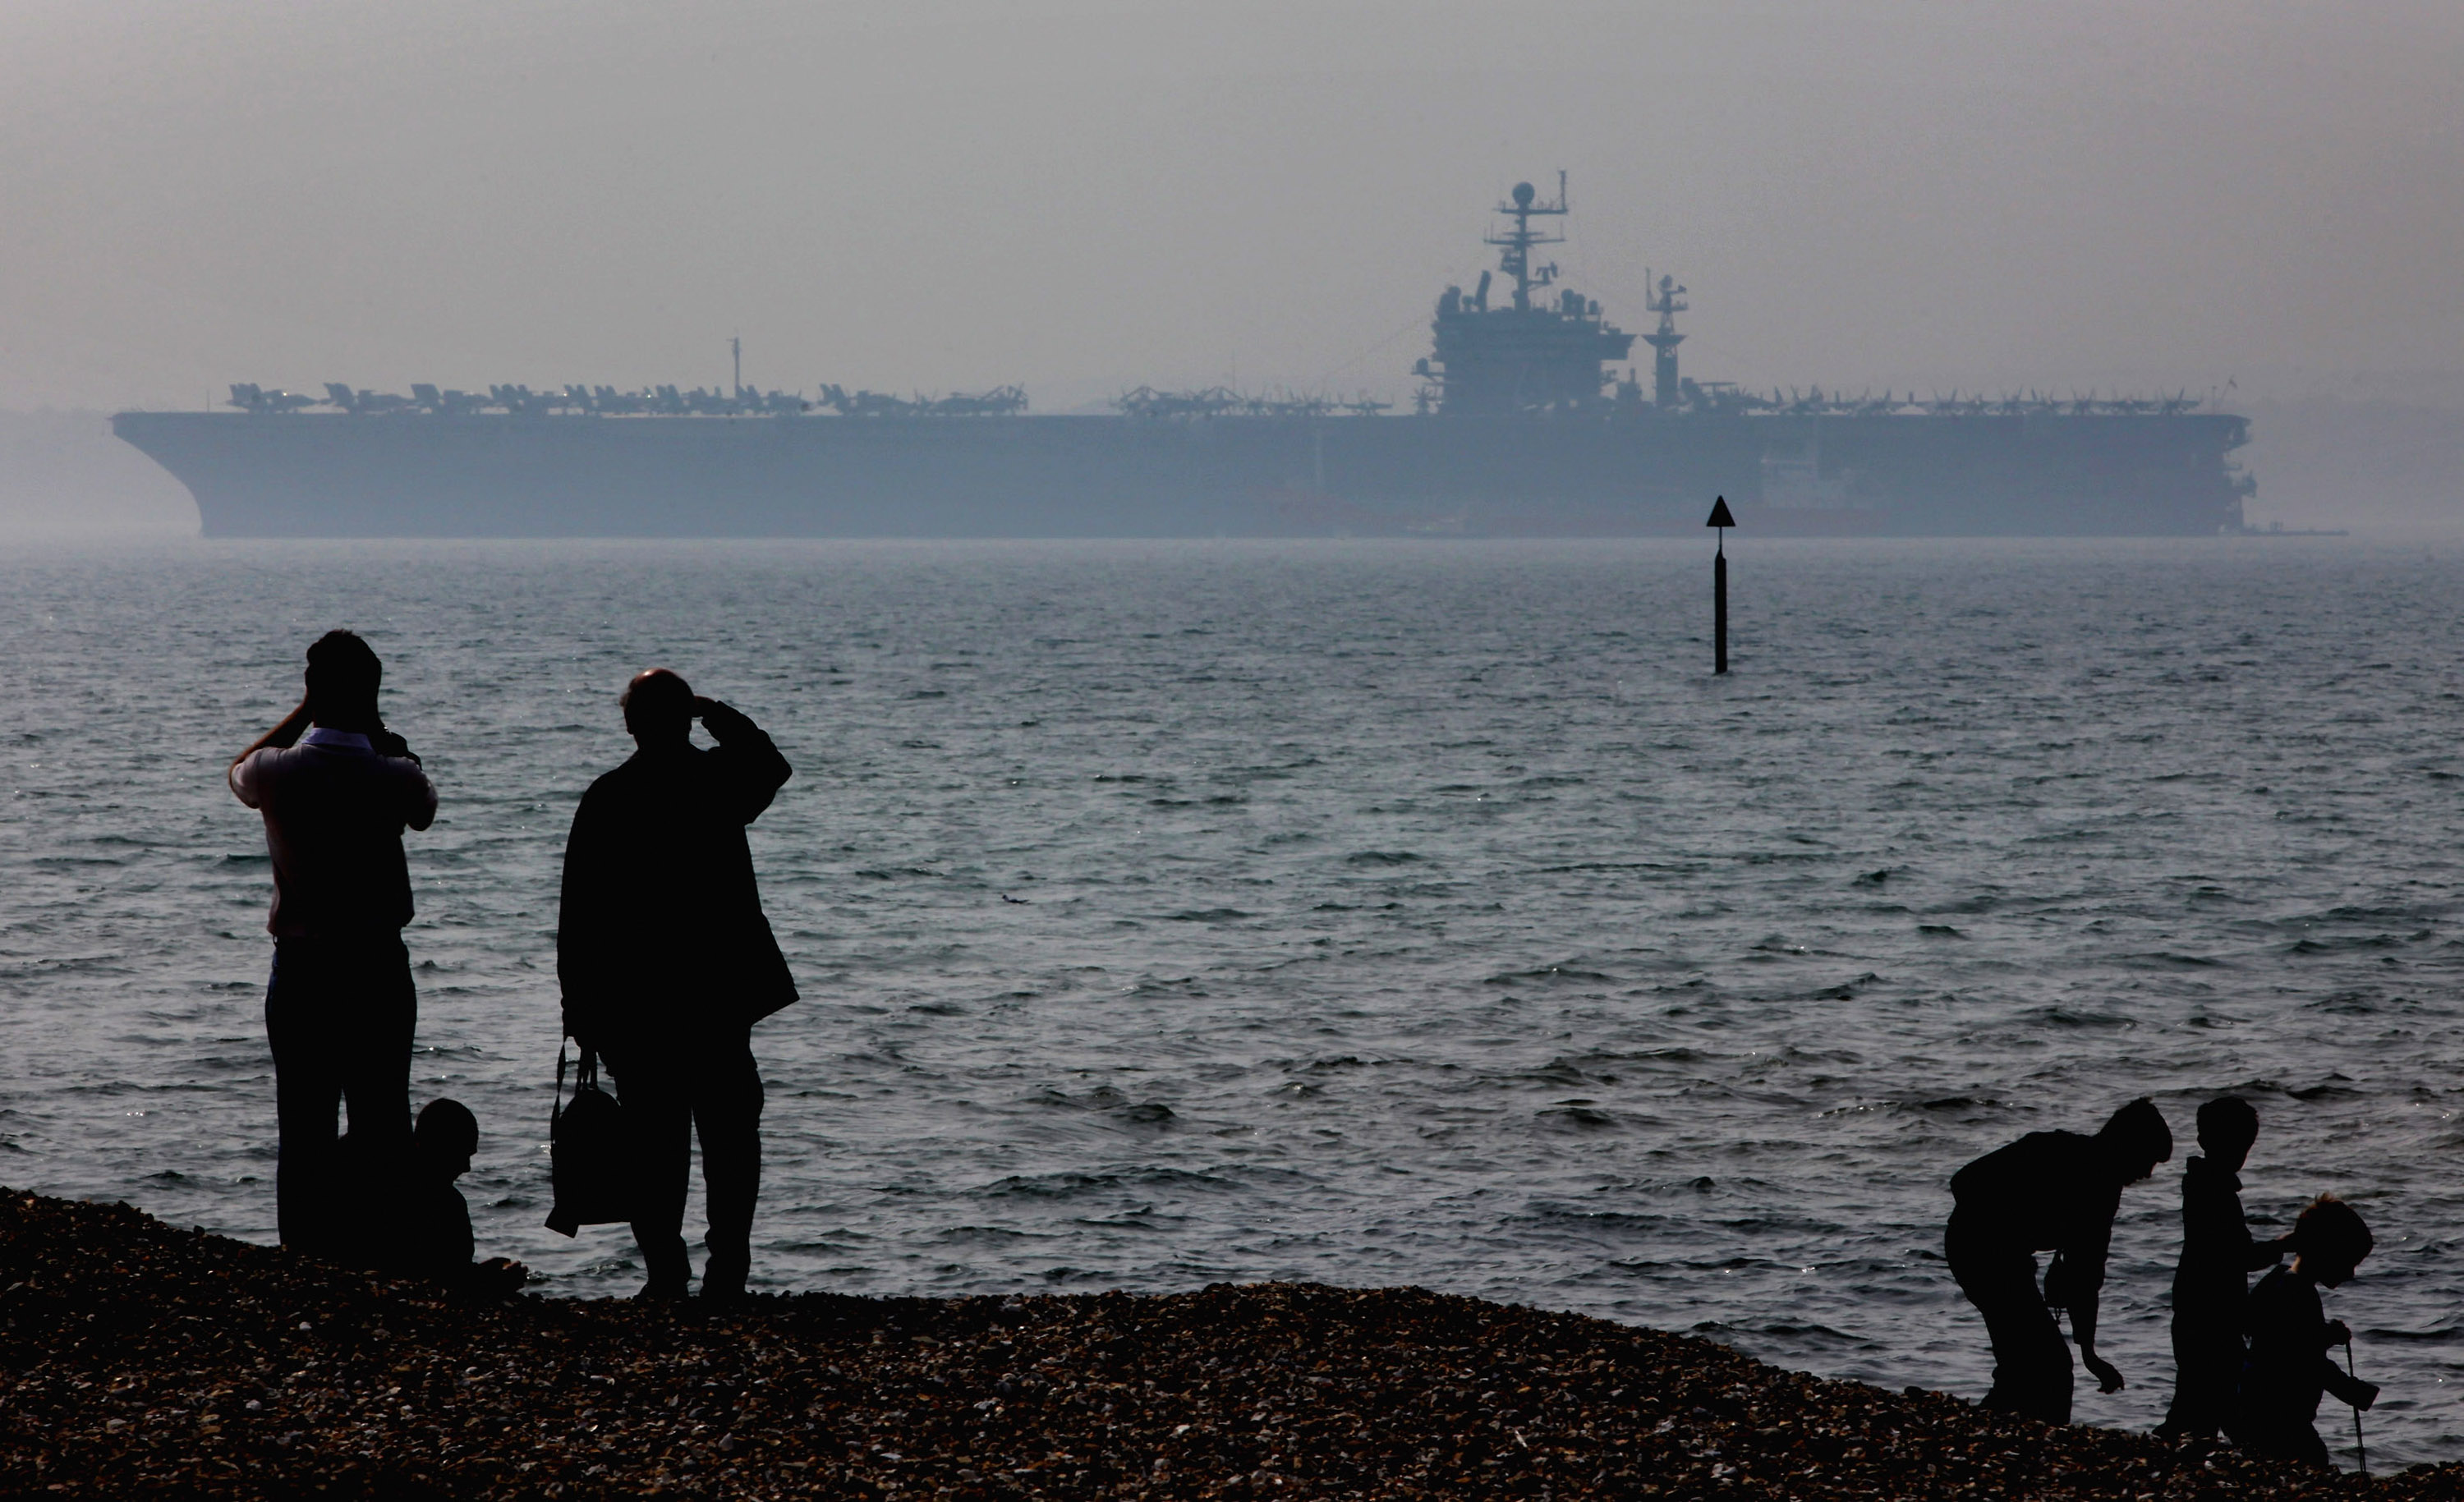 People stop to look at the USS Theodore Roosevelt anchored off Stokes Bay on April 6, 2009 in Portsmouth, England. (Matt Cardy/Getty Images)